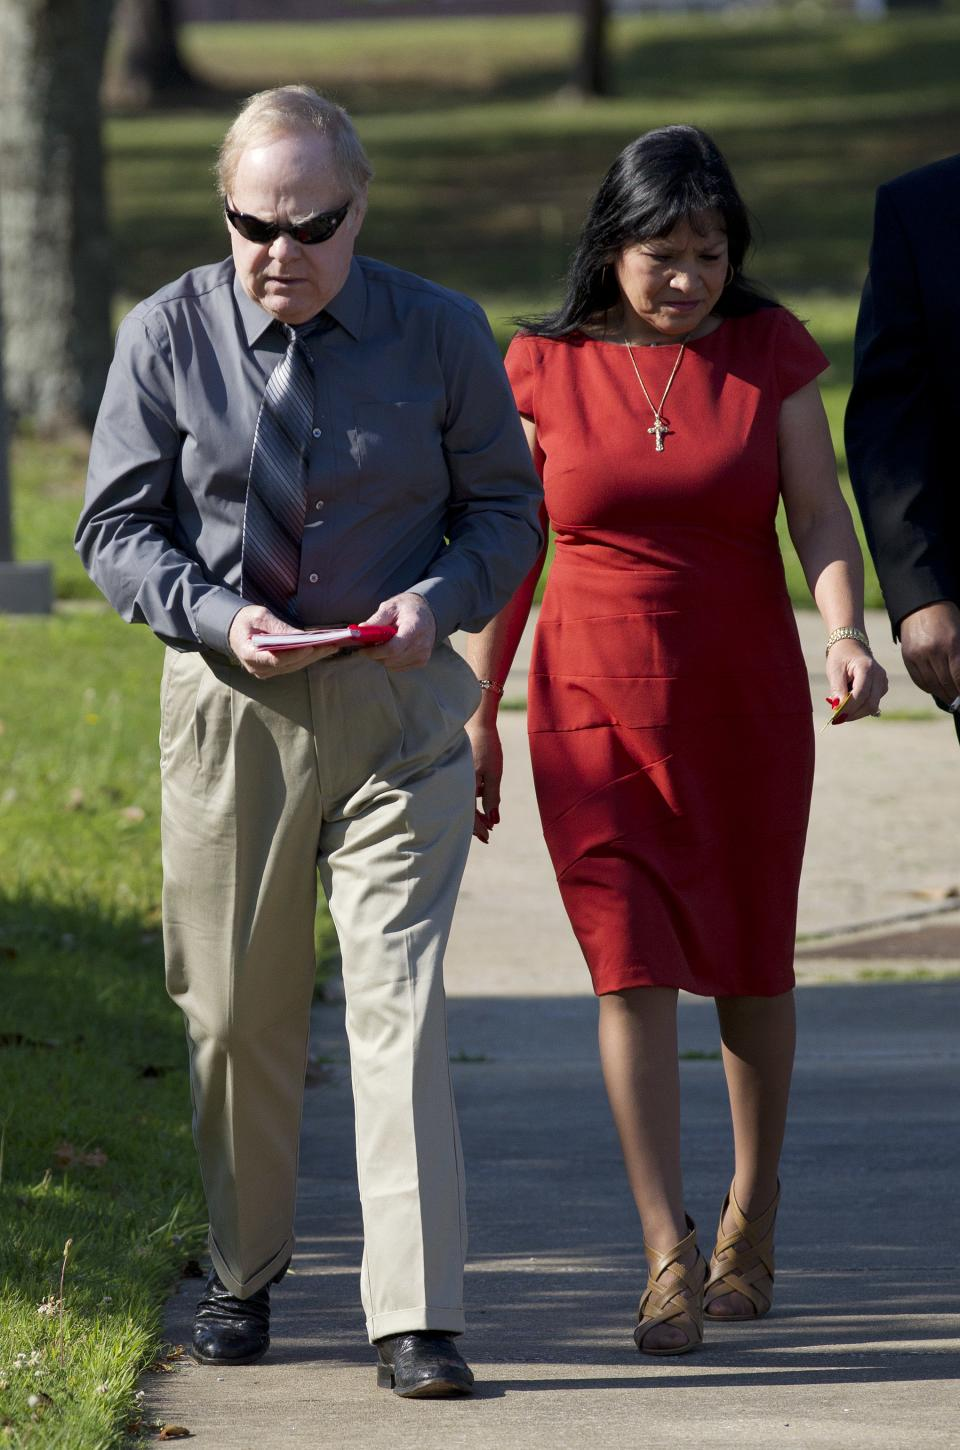 Harvey Updyke arrives with his wife Elva at the Lee County Justice Center in Auburn, Ala., Tuesday, June 19, 2012.  Jury selection is scheduled to begin in his trial where he is accused of poisoning Toomer's Corner's historic oak trees on the campus of Auburn University. (AP Photo/Dave Martin)